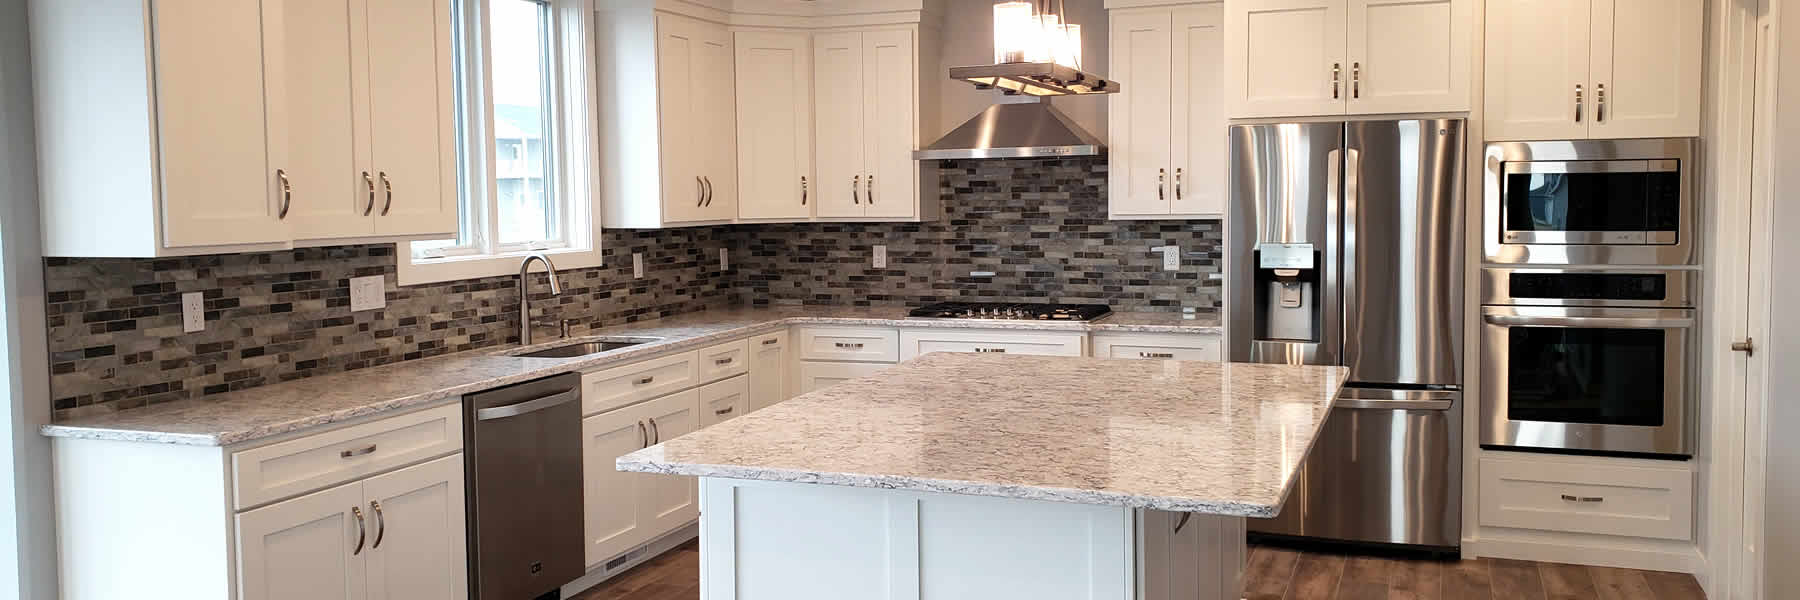 Construction and home building services in the Fargo-Moorhead area.